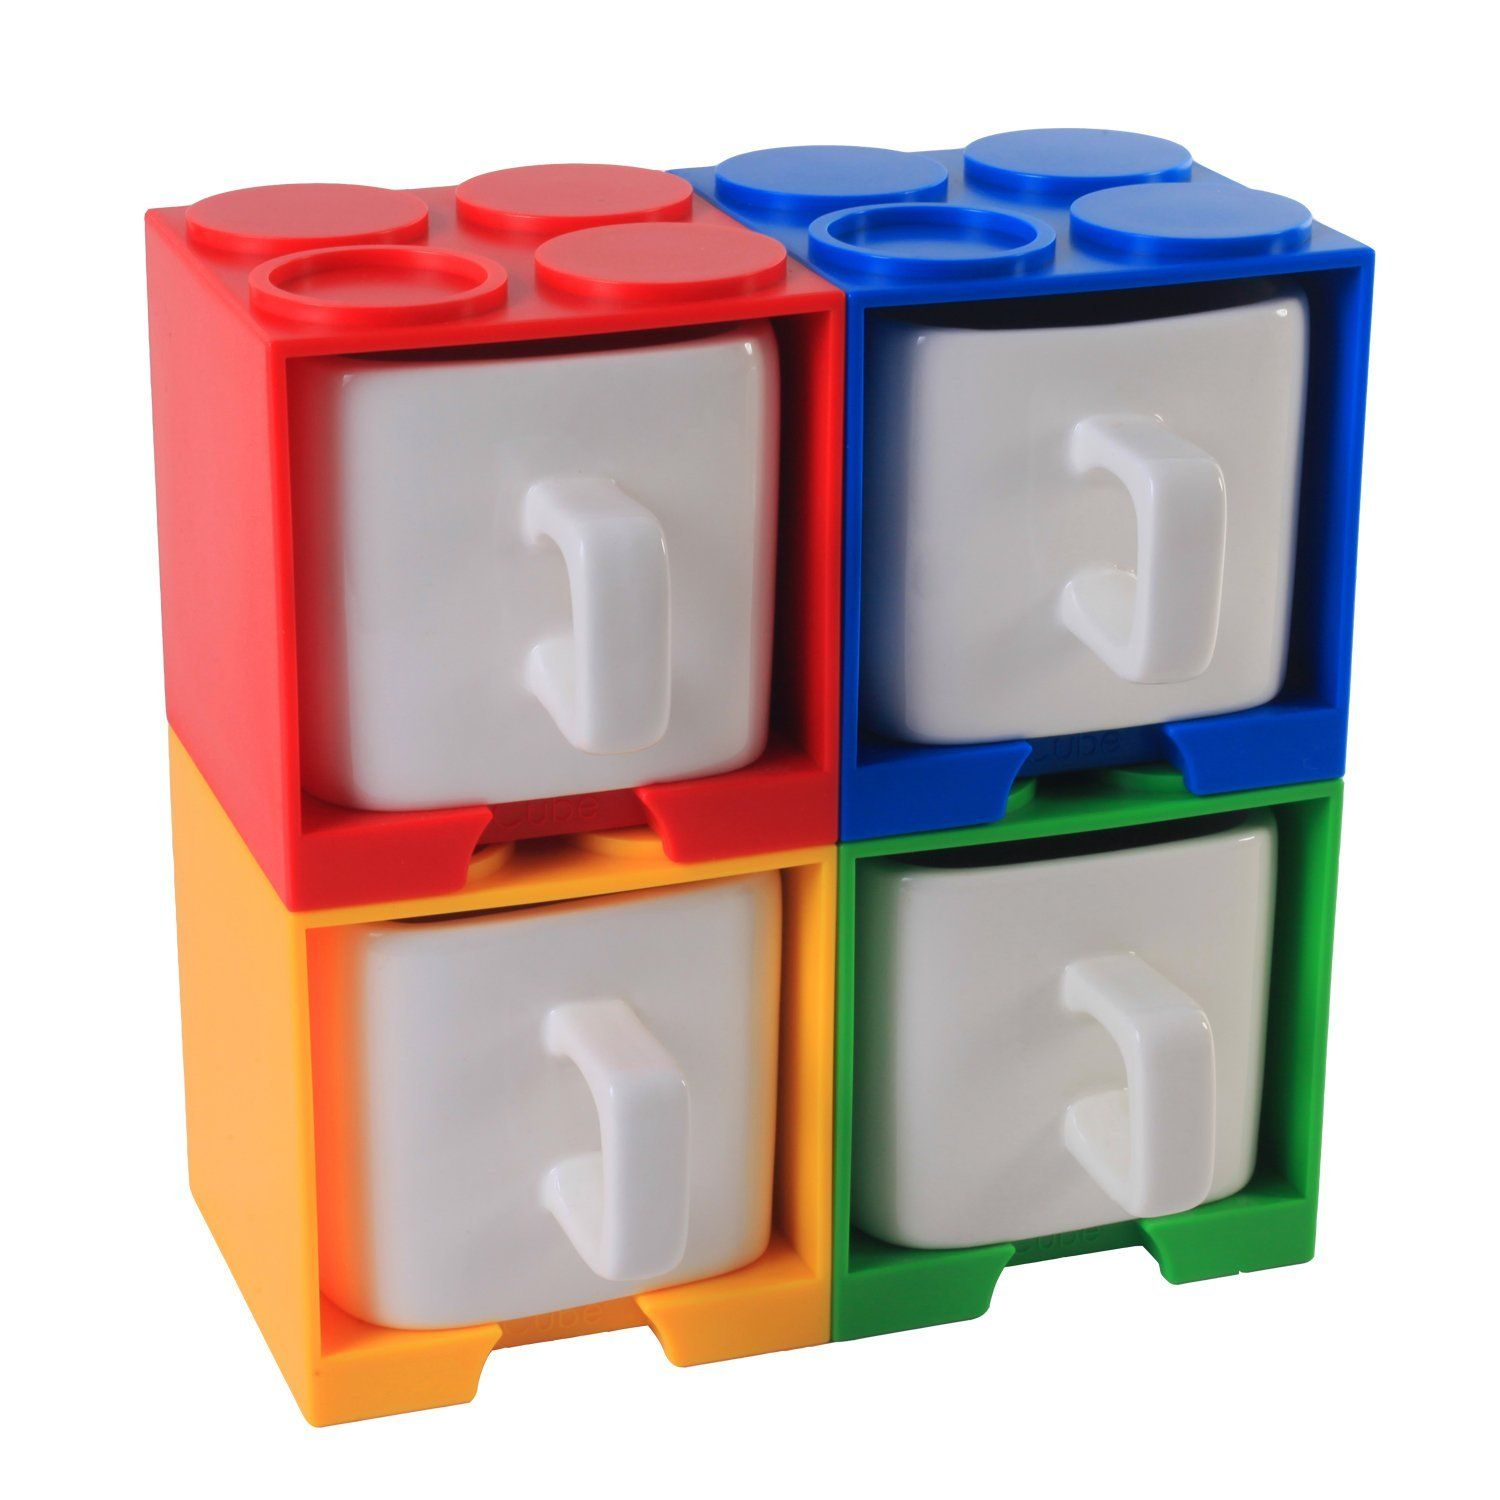 Cube Coffee Mug With Lego Shaped Stackable Storage Container Invention Vovogifts Gadget Coffeemug New Amazing